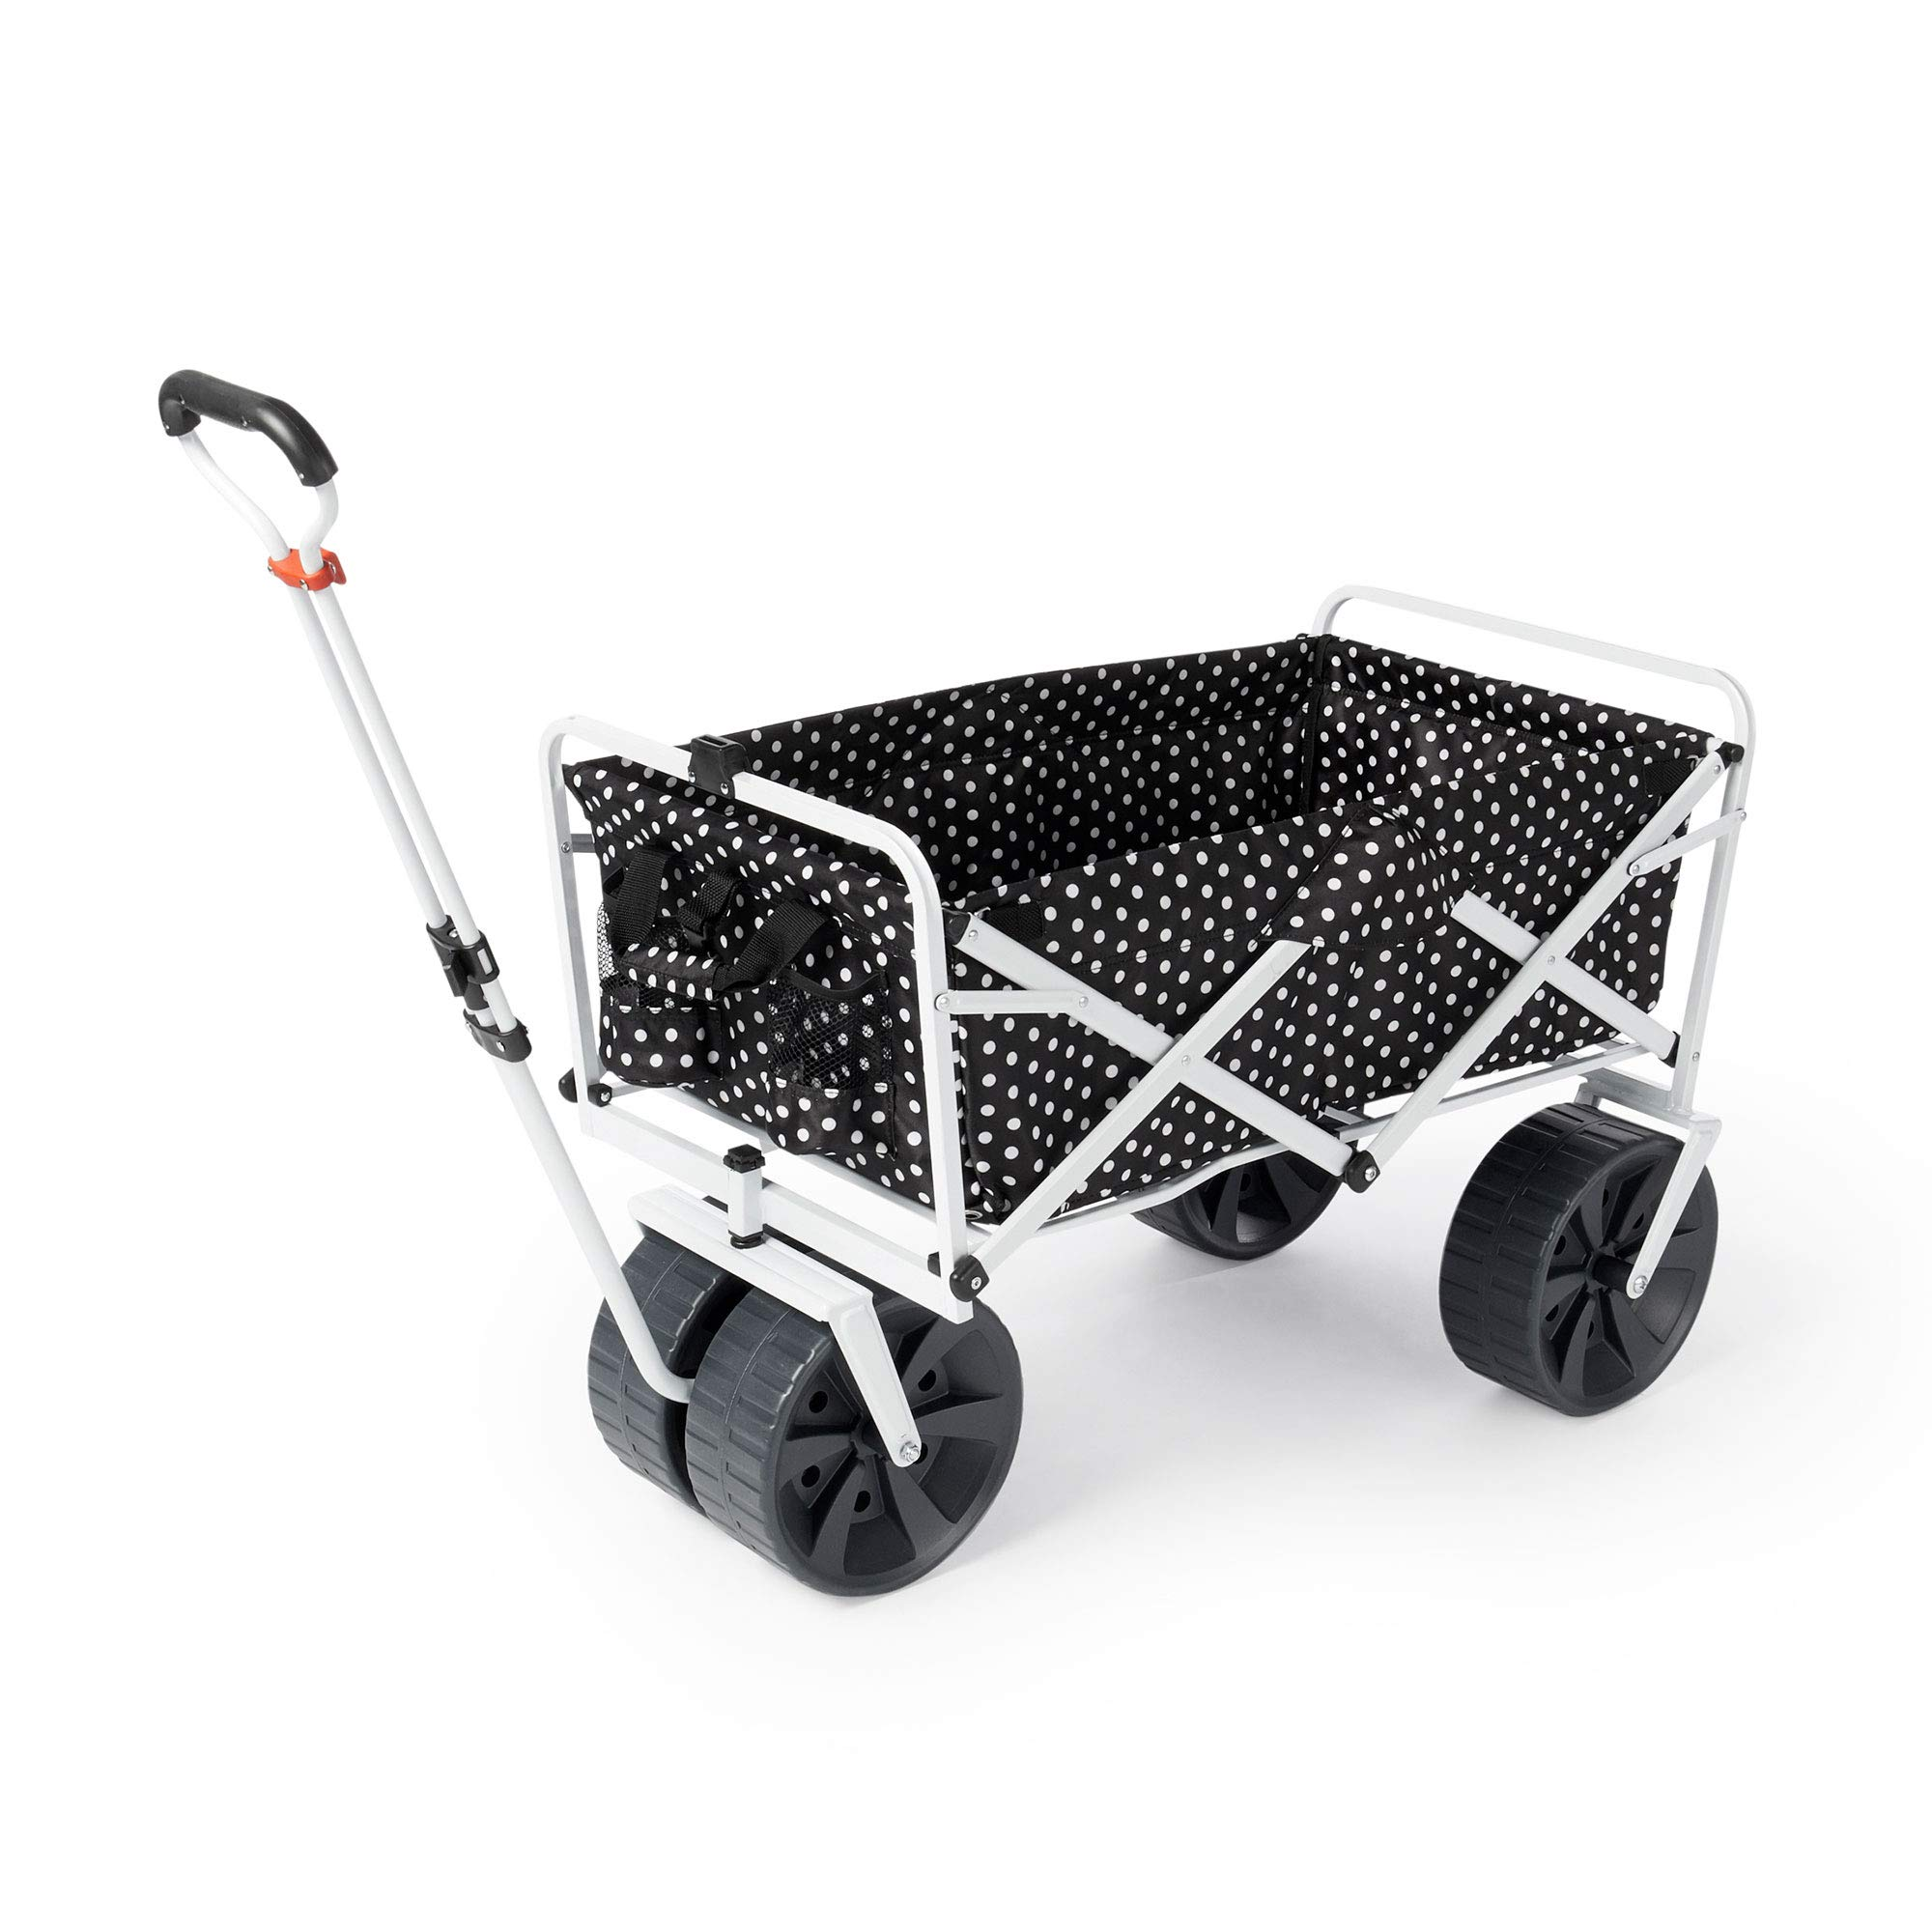 Mac Sports Heavy Duty All Terrain Folding Multi Utility Beach Wagon, Black Dots by Mac Sports